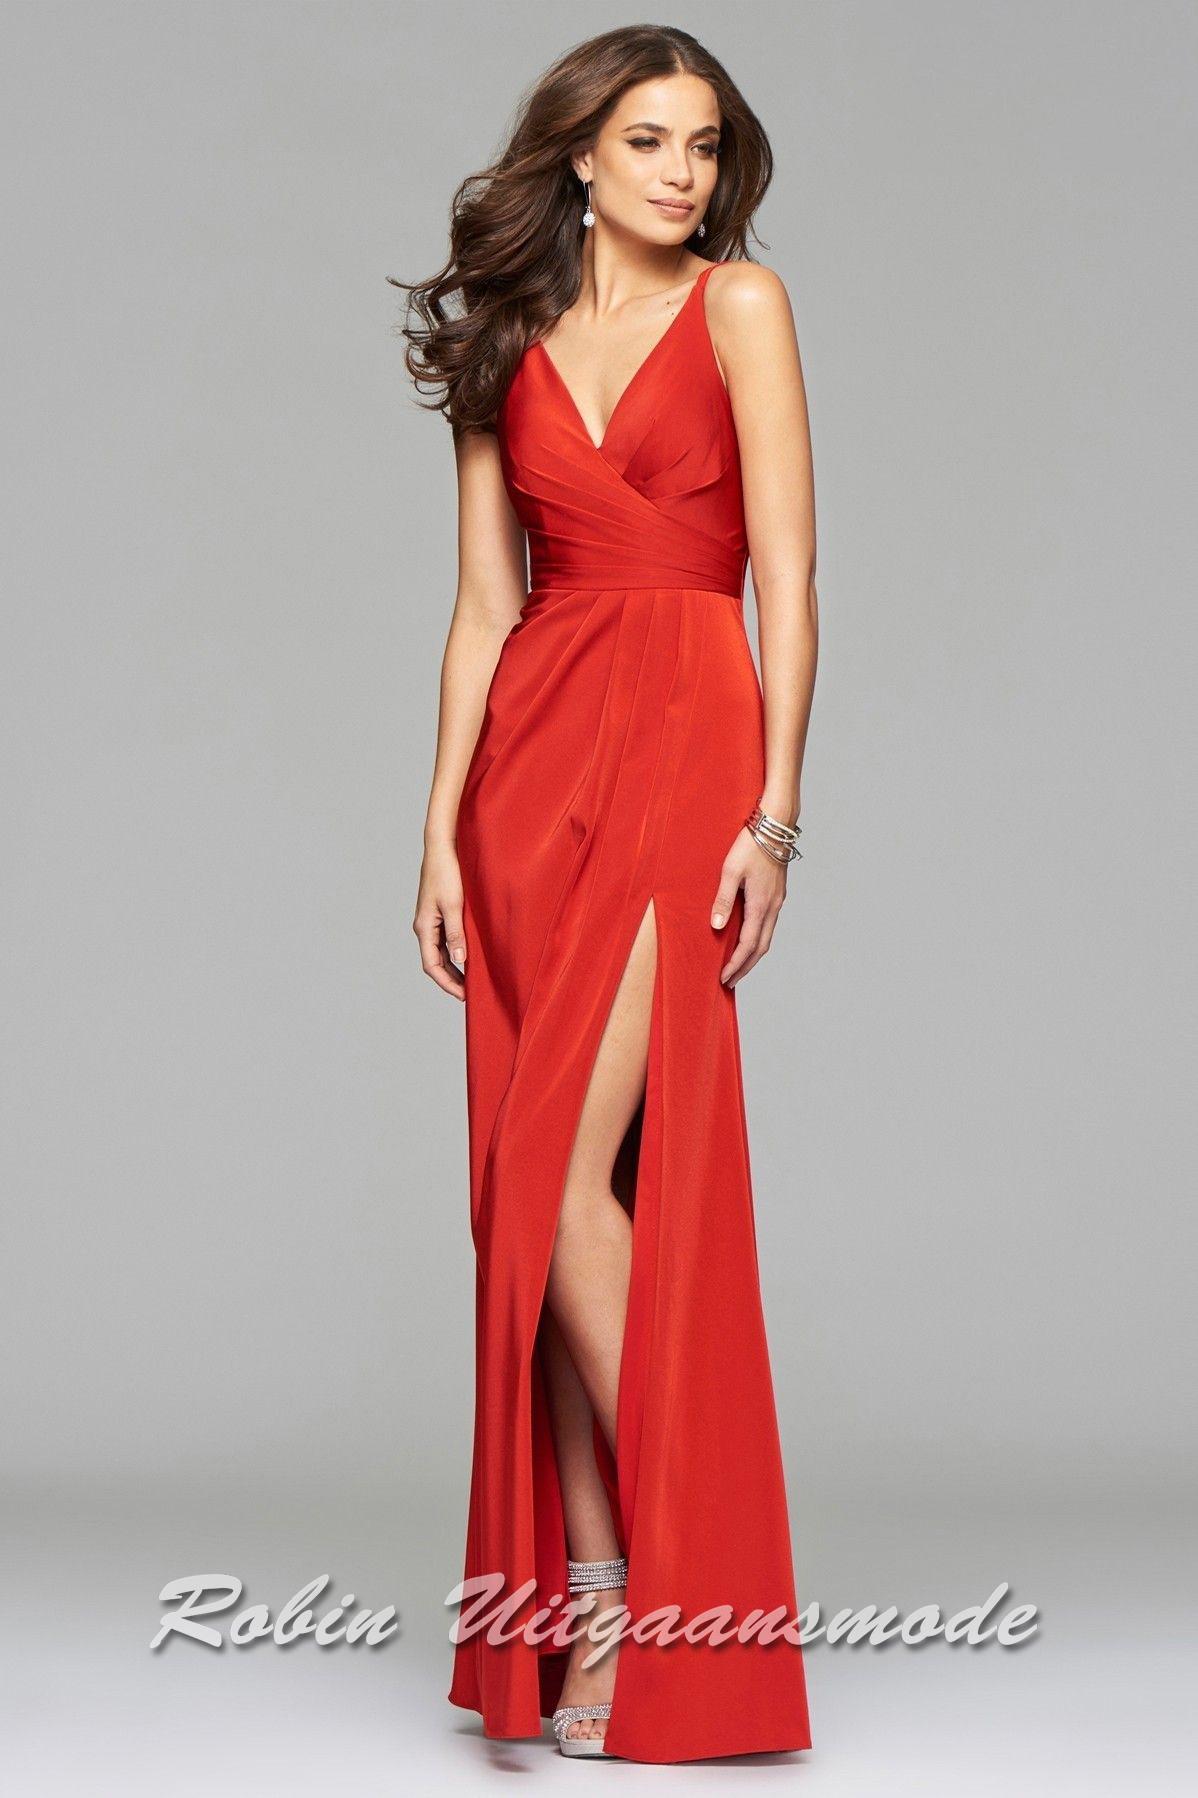 9342fe89 Red prom dresses with draped front, V-neck and a high slit | modelnr